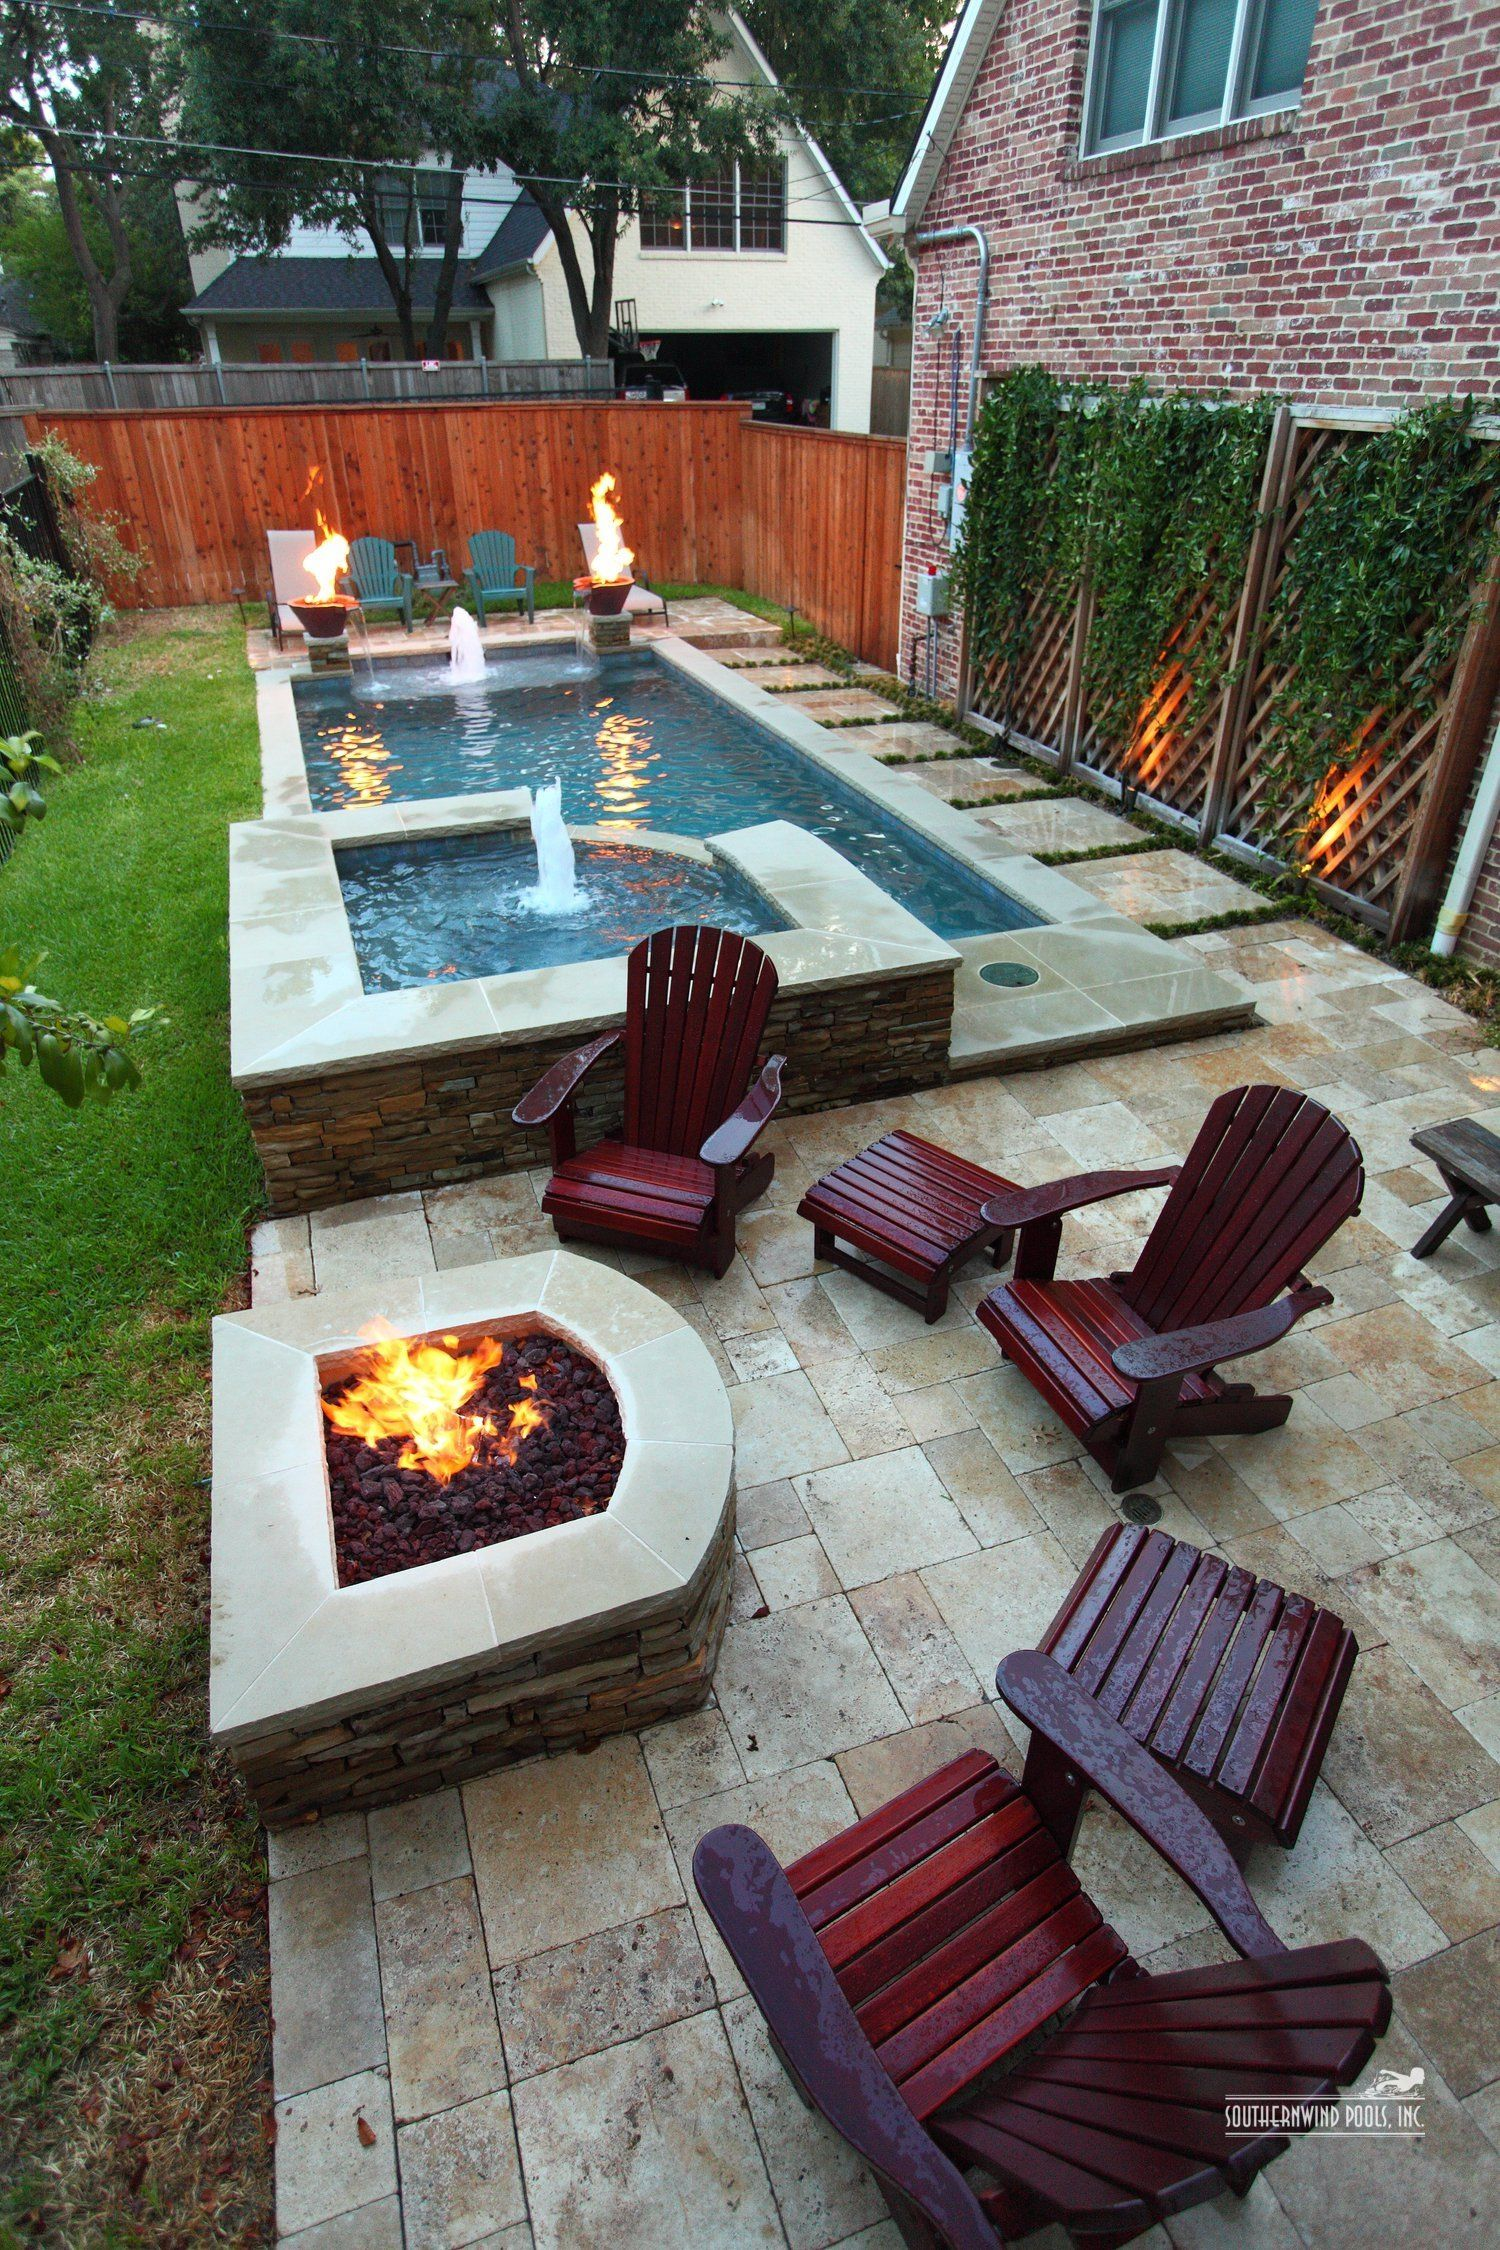 Pool Ideas For A Small Backyard Narrow Pool With Hot Tub Firepit Great For Small Spaces In My Small Backyard Pools Backyard Patio Small Backyard